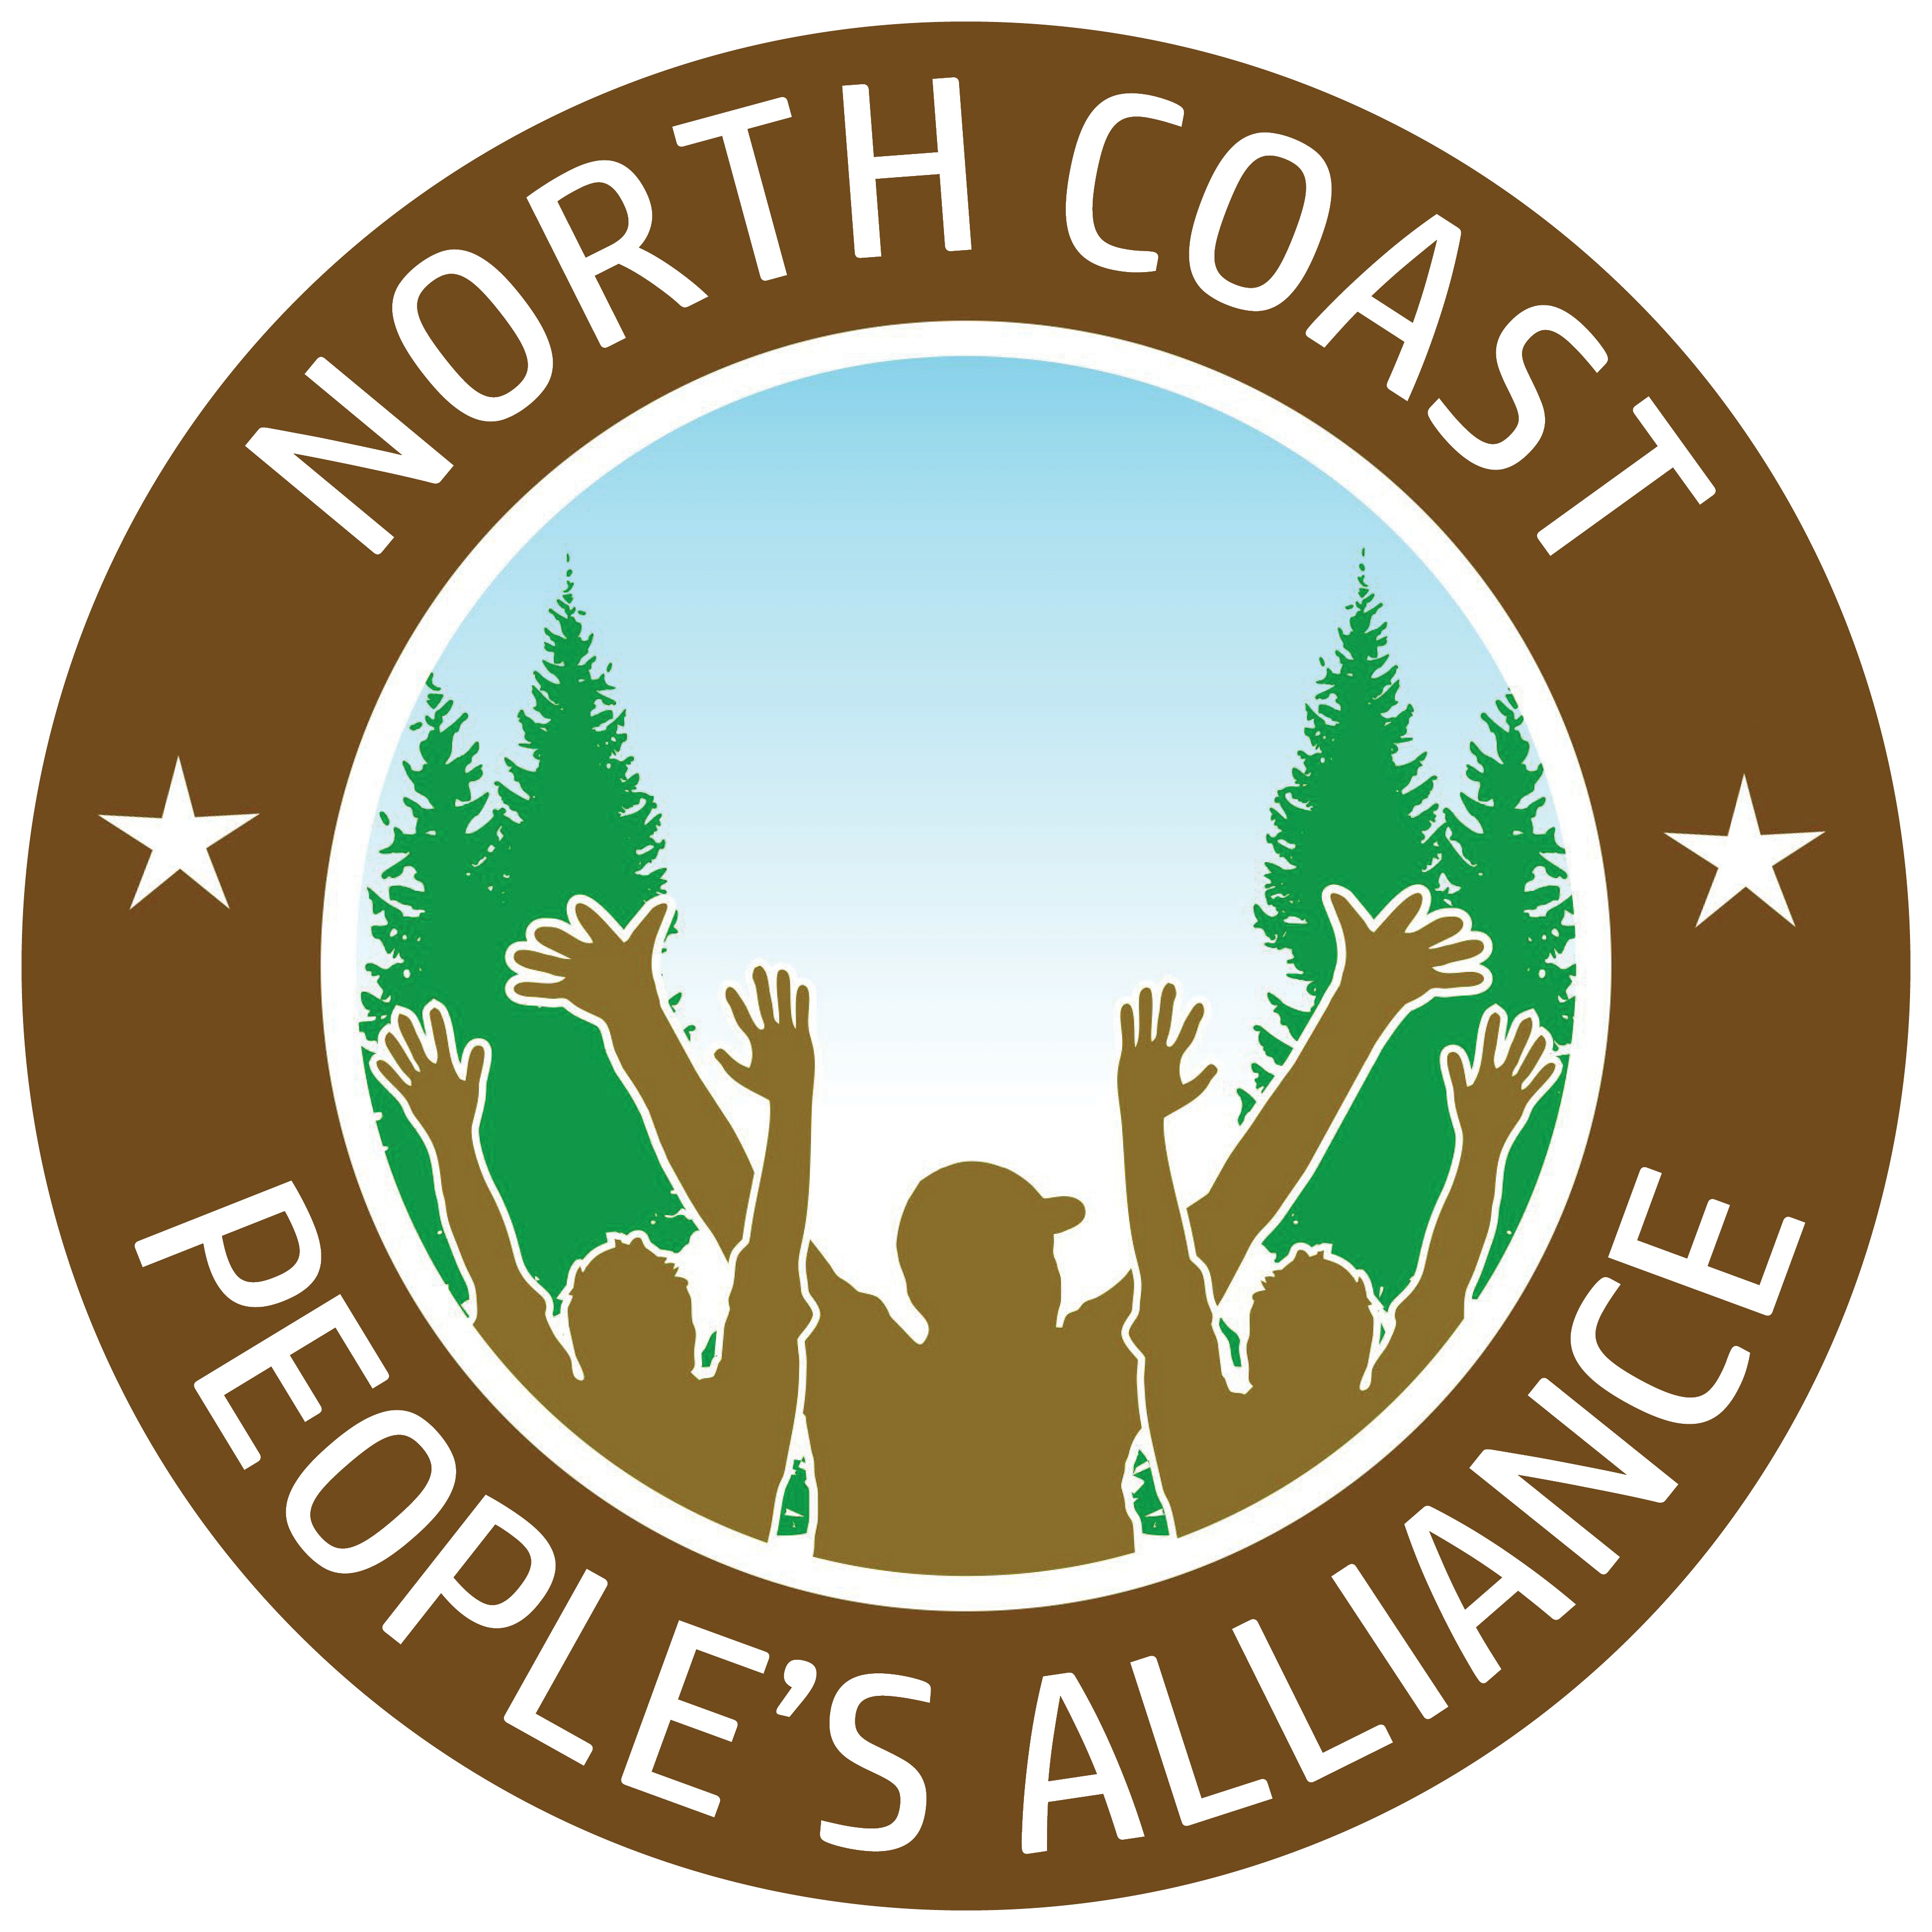 North Coast People's Alliance Endorsement